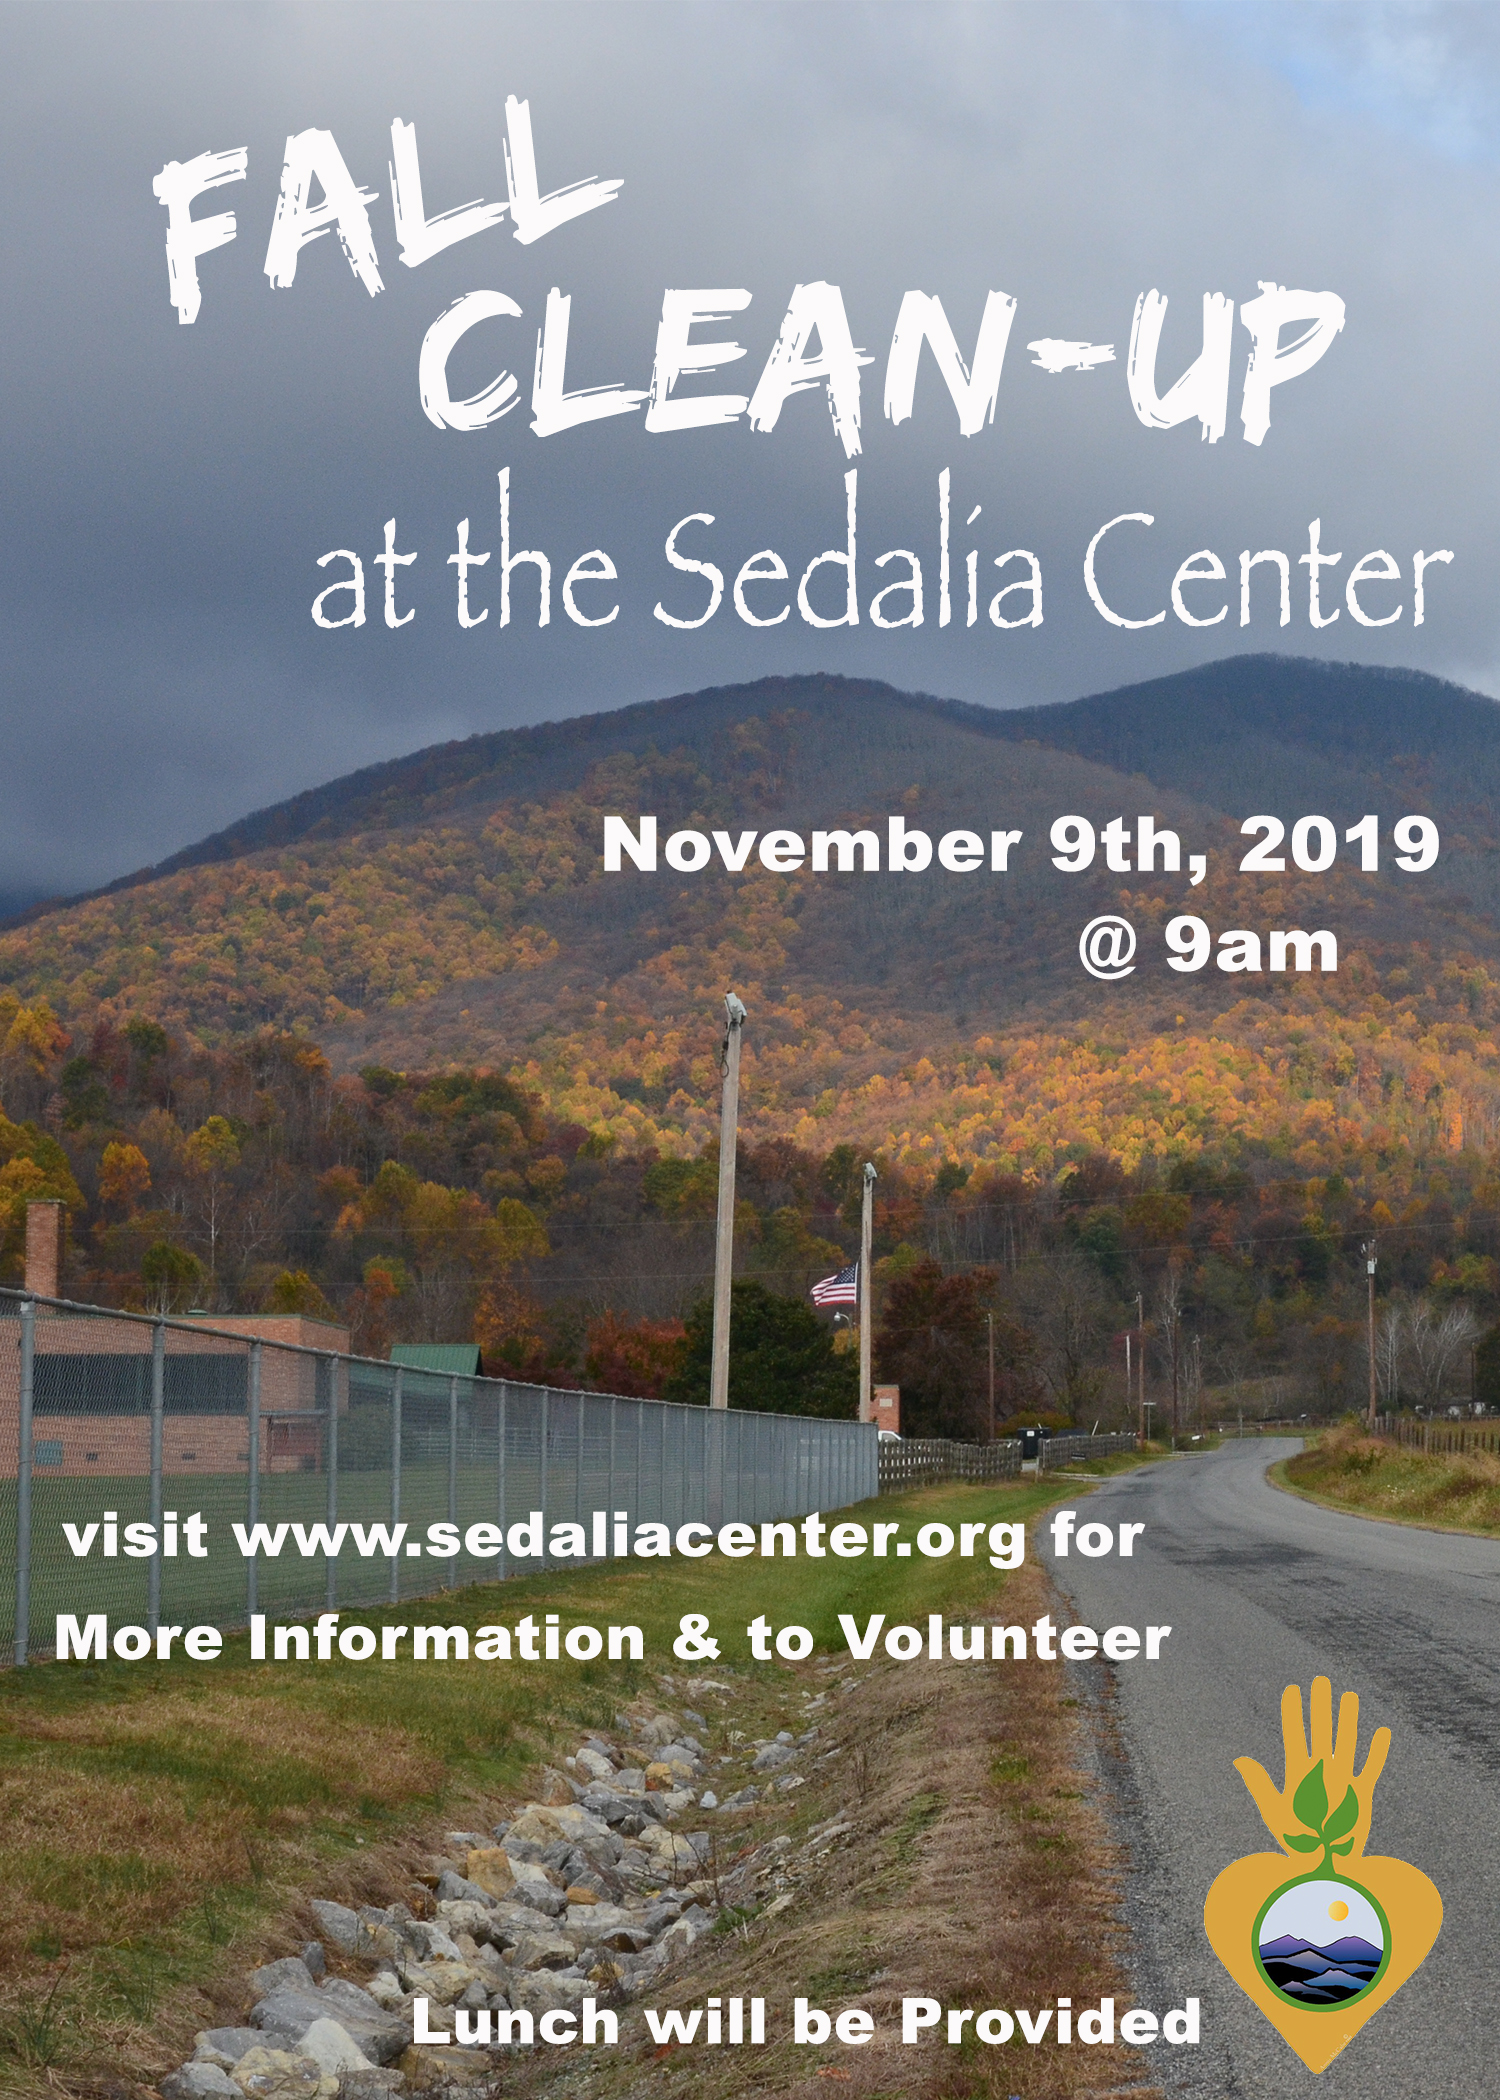 2019 Fall Clean-Up at the Sedalia Center